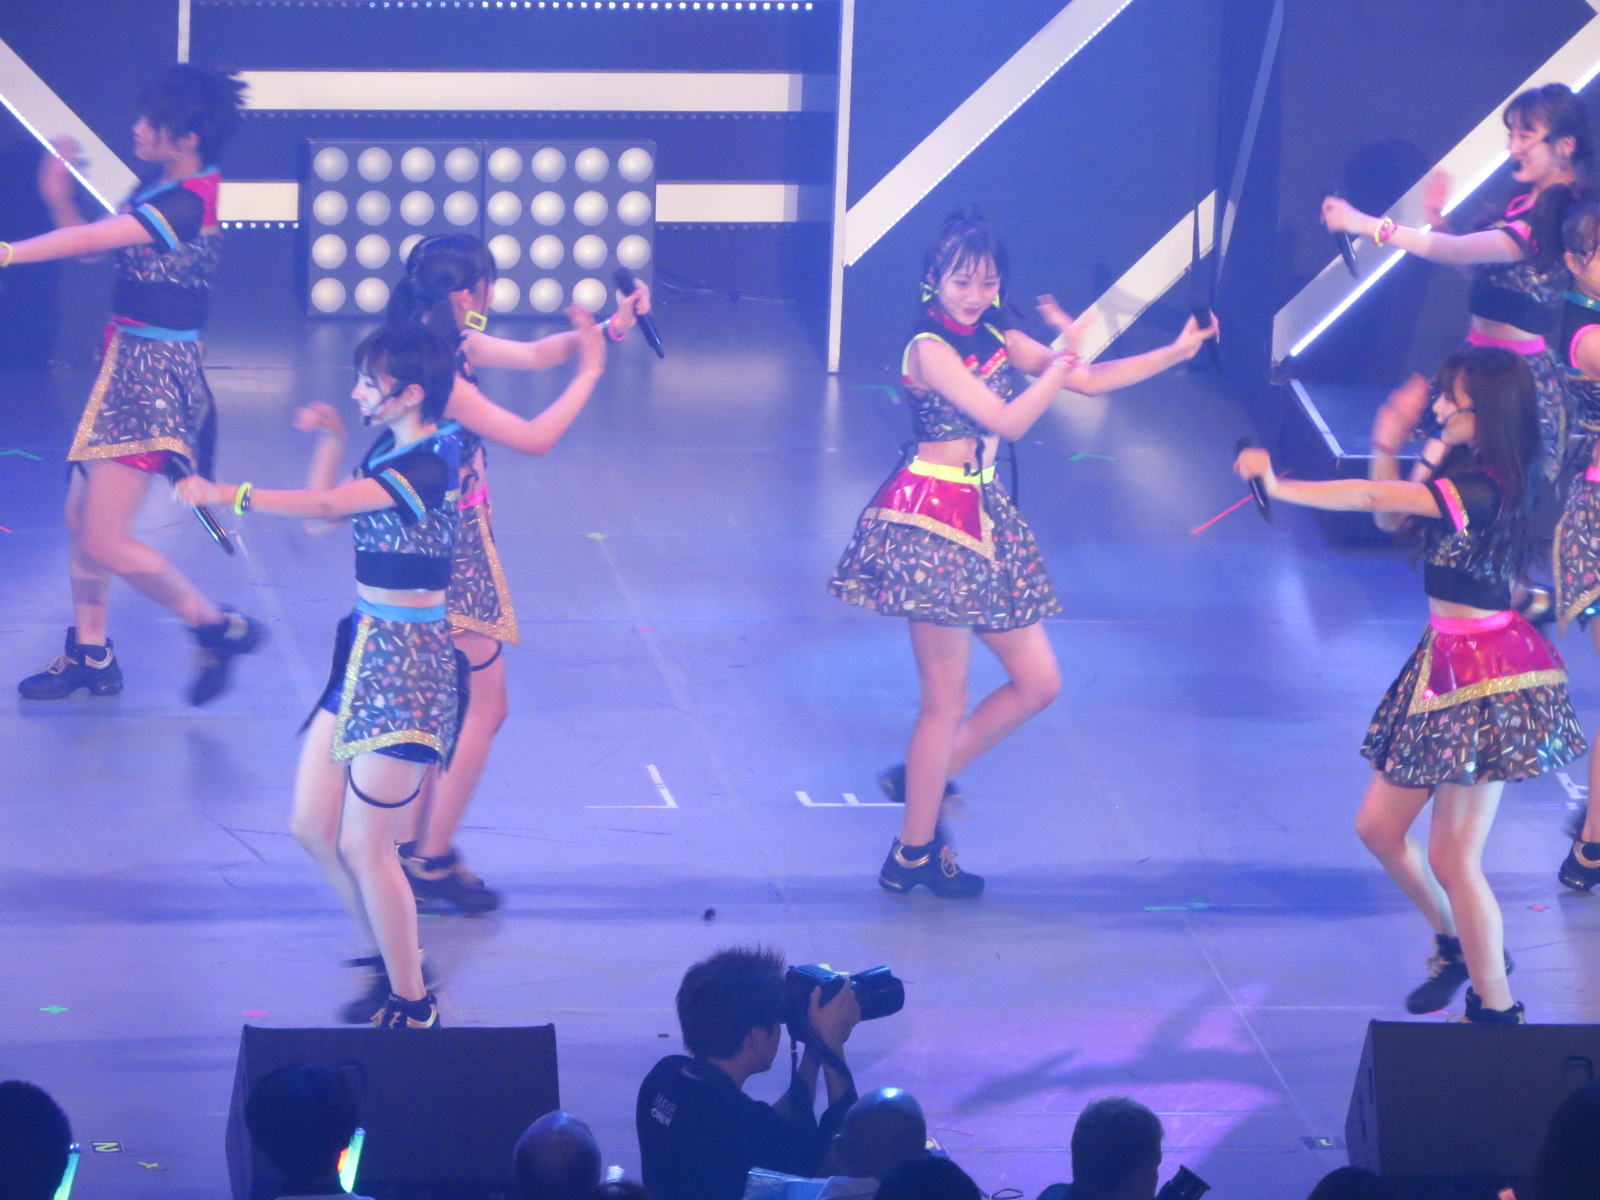 NMB48 LIVE TOUR 2018 in Summer・石川公演の画像-074